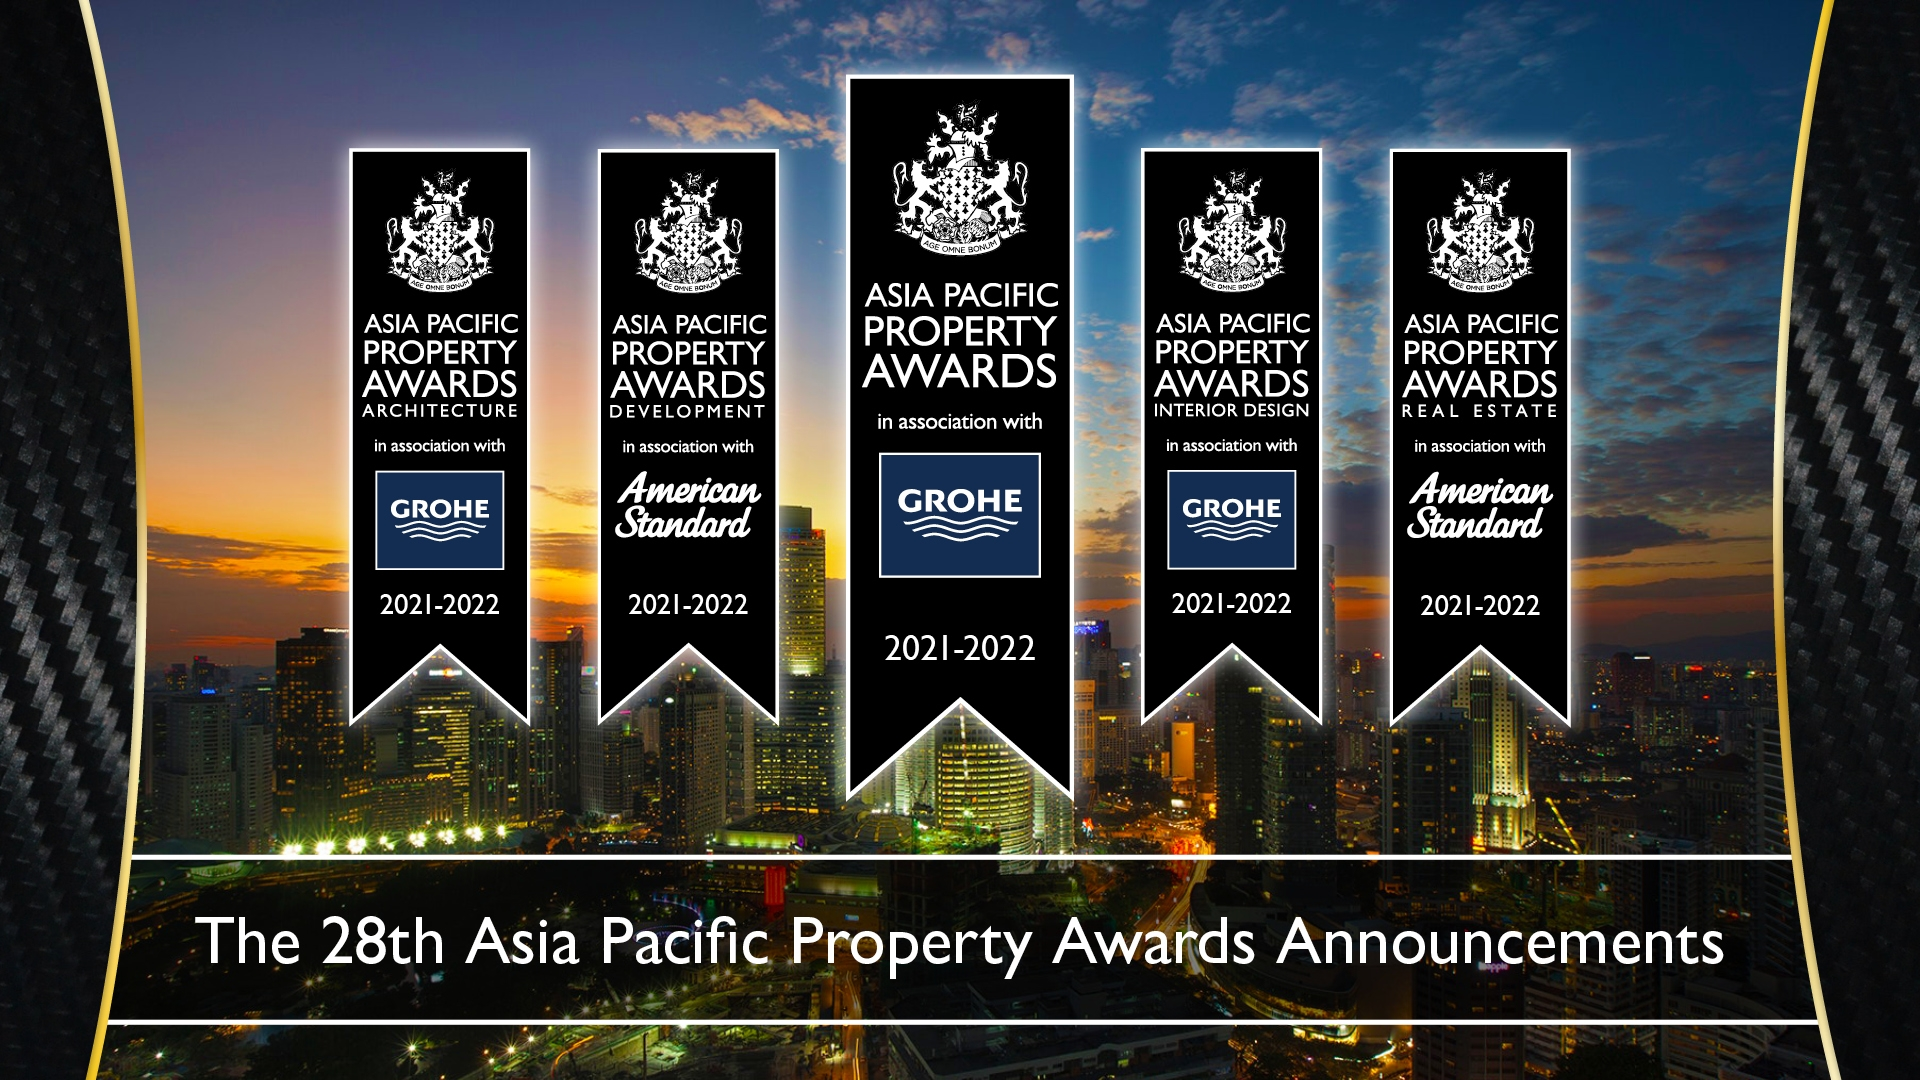 grohe and american standard announce winners of the asia pacific property awards